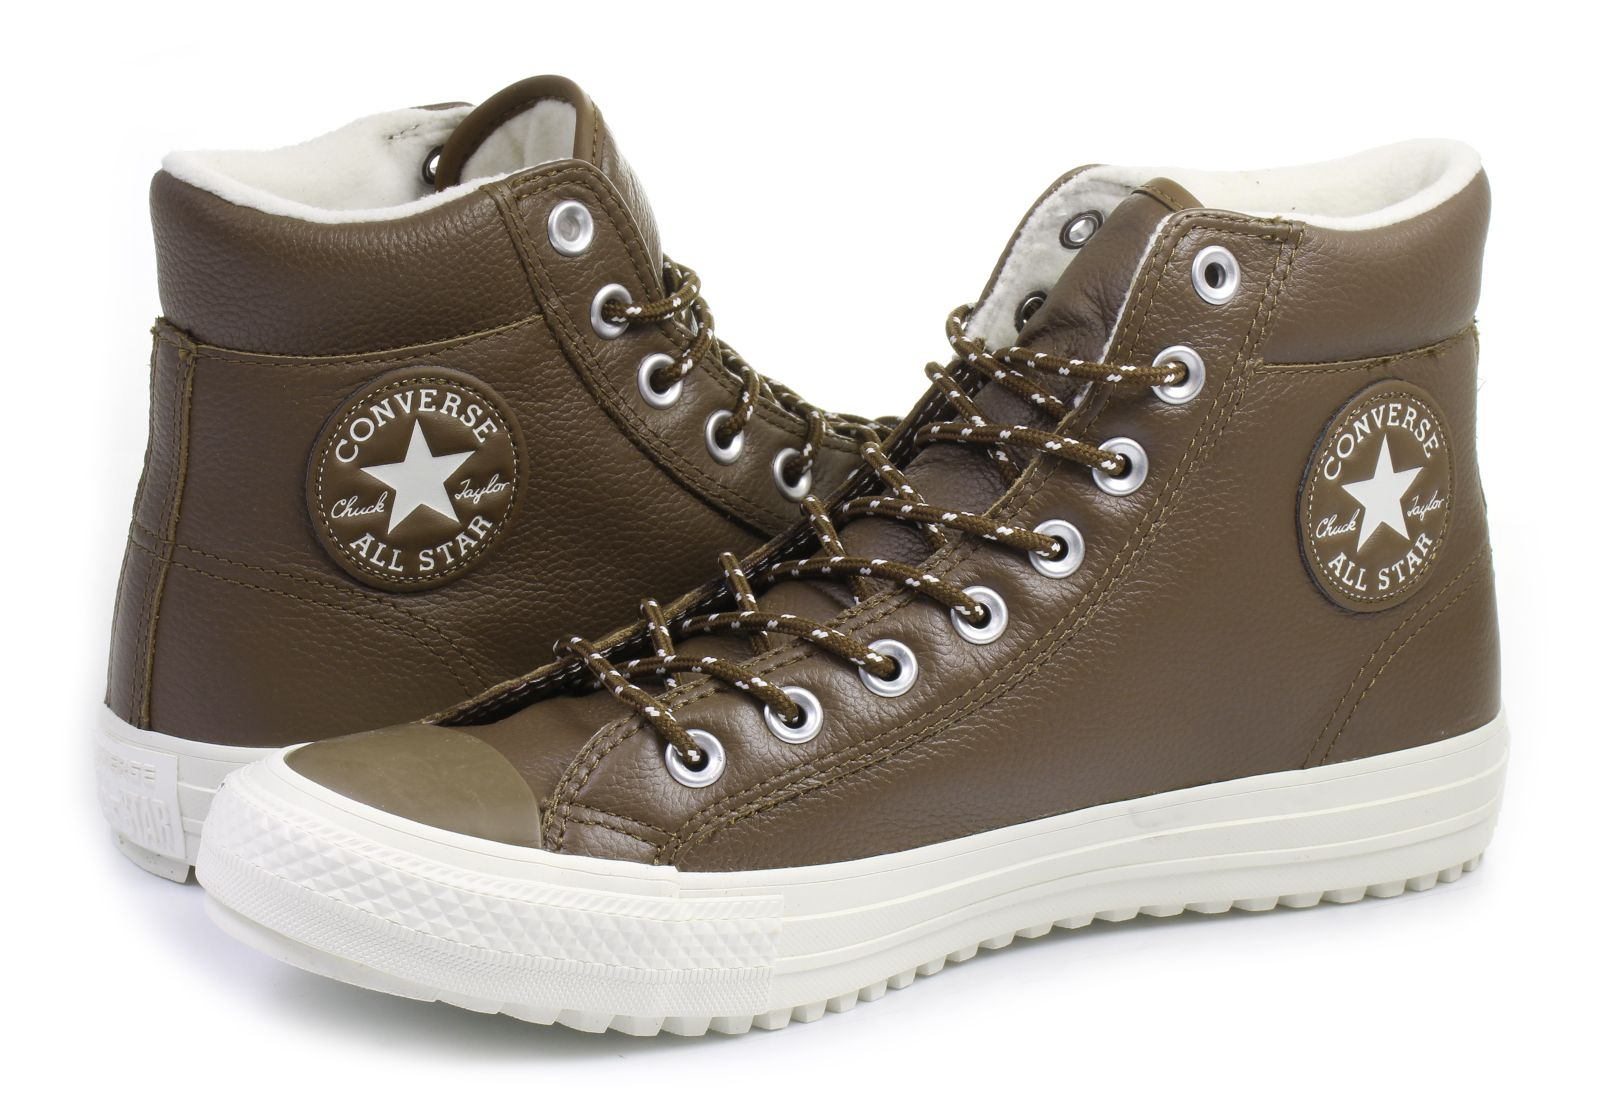 Converse Tornacipő - Chuck Taylor All Star Boot Pc - 157685C ... 4930aa0c48